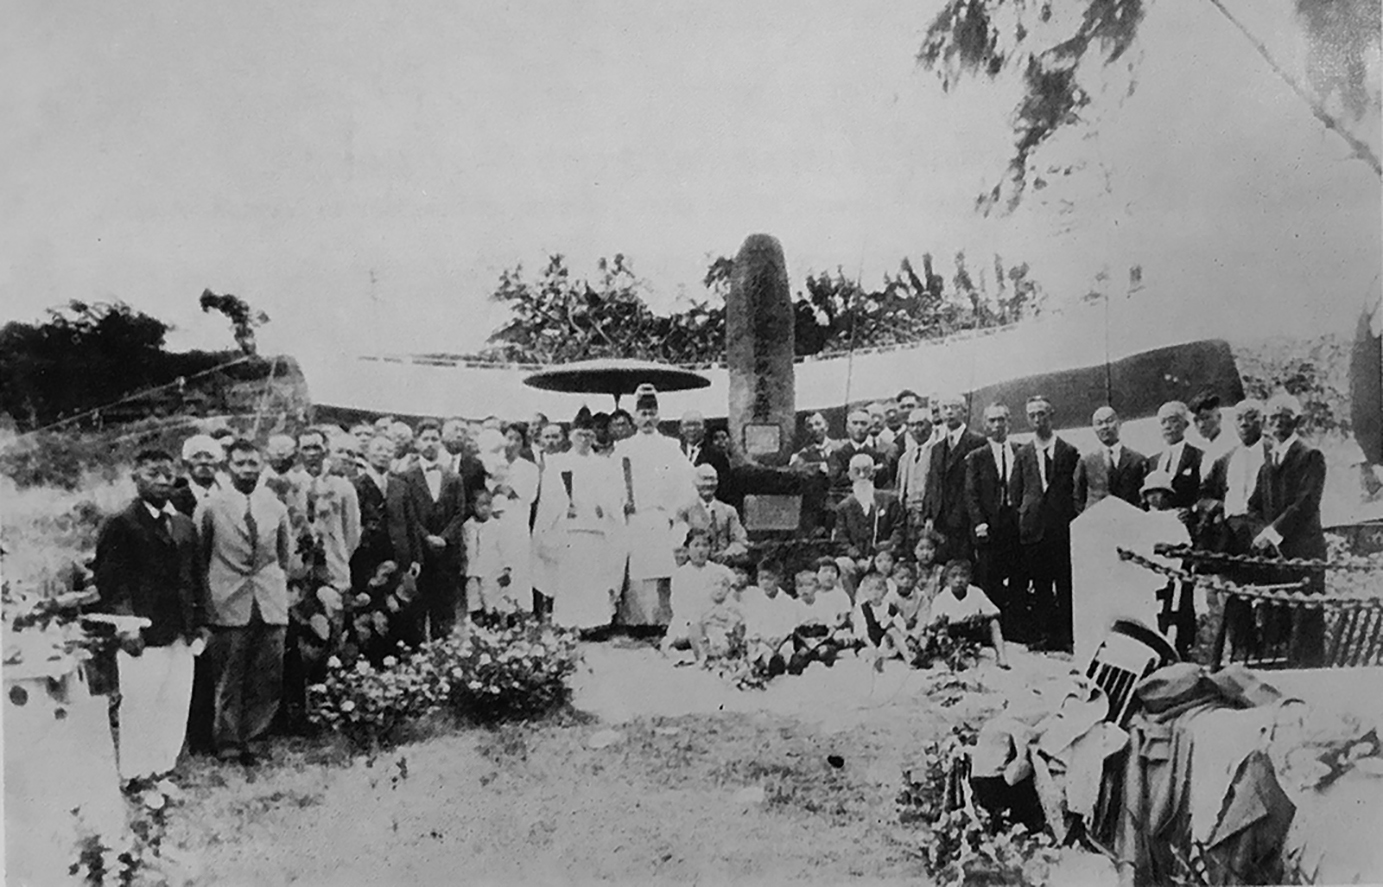 """The last two surviving Gannenmono in Hawai'i — Hanzo Tanagawa (seated left of the monument) and a full-bearded Sentaro Ishii (seated right of the monument) — attended the unveiling of the Makiki Cemetery monument playing homage to the Gannenmono in 1927. (From the book, """"A History of the Japanese Immigrants of Hawaii"""" by United Japanese Society of Hawaii."""")"""